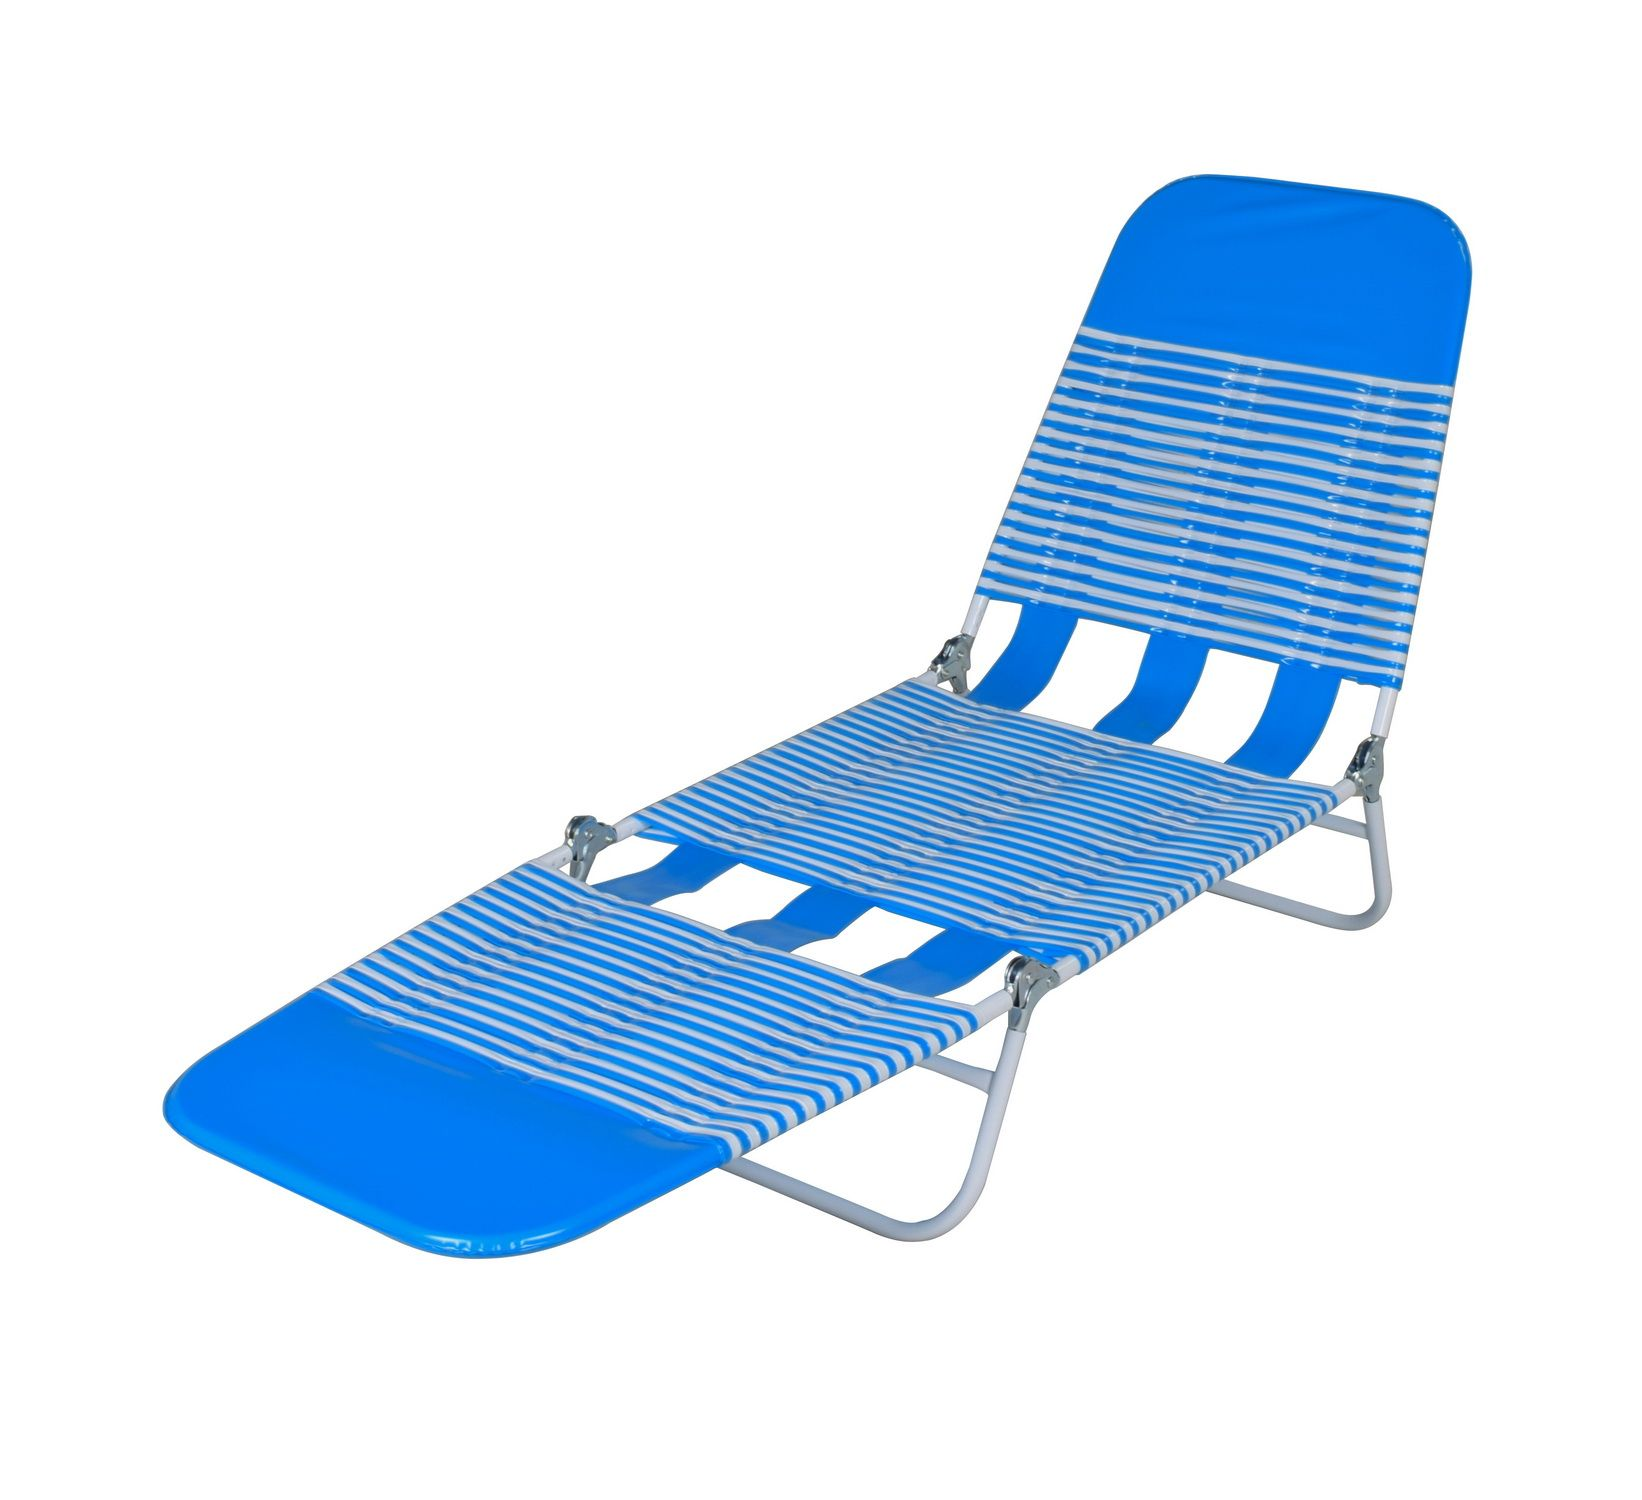 Mainstays Folding Jelly Beach Lounge Chair Blue Walmart Com In 2020 Beach Lounge Chair Lounge Chair Outdoor Folding Lounge Chair